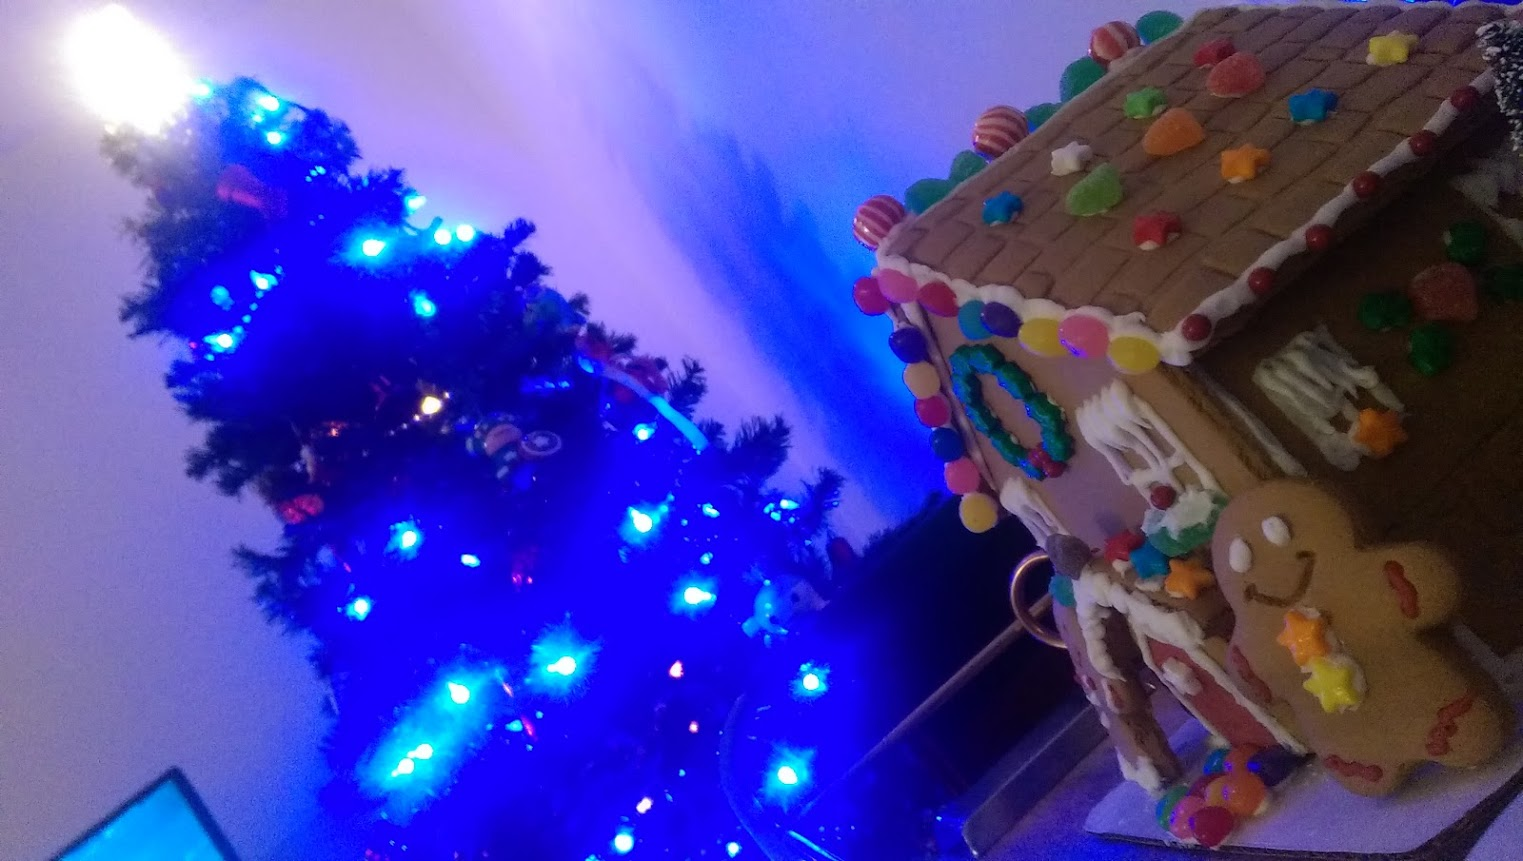 A view of the gingerbread house and Christmas tree displayed in the apartment of WTOP Digital Editor Ginger Whitaker. (Courtesy Mike Marks)